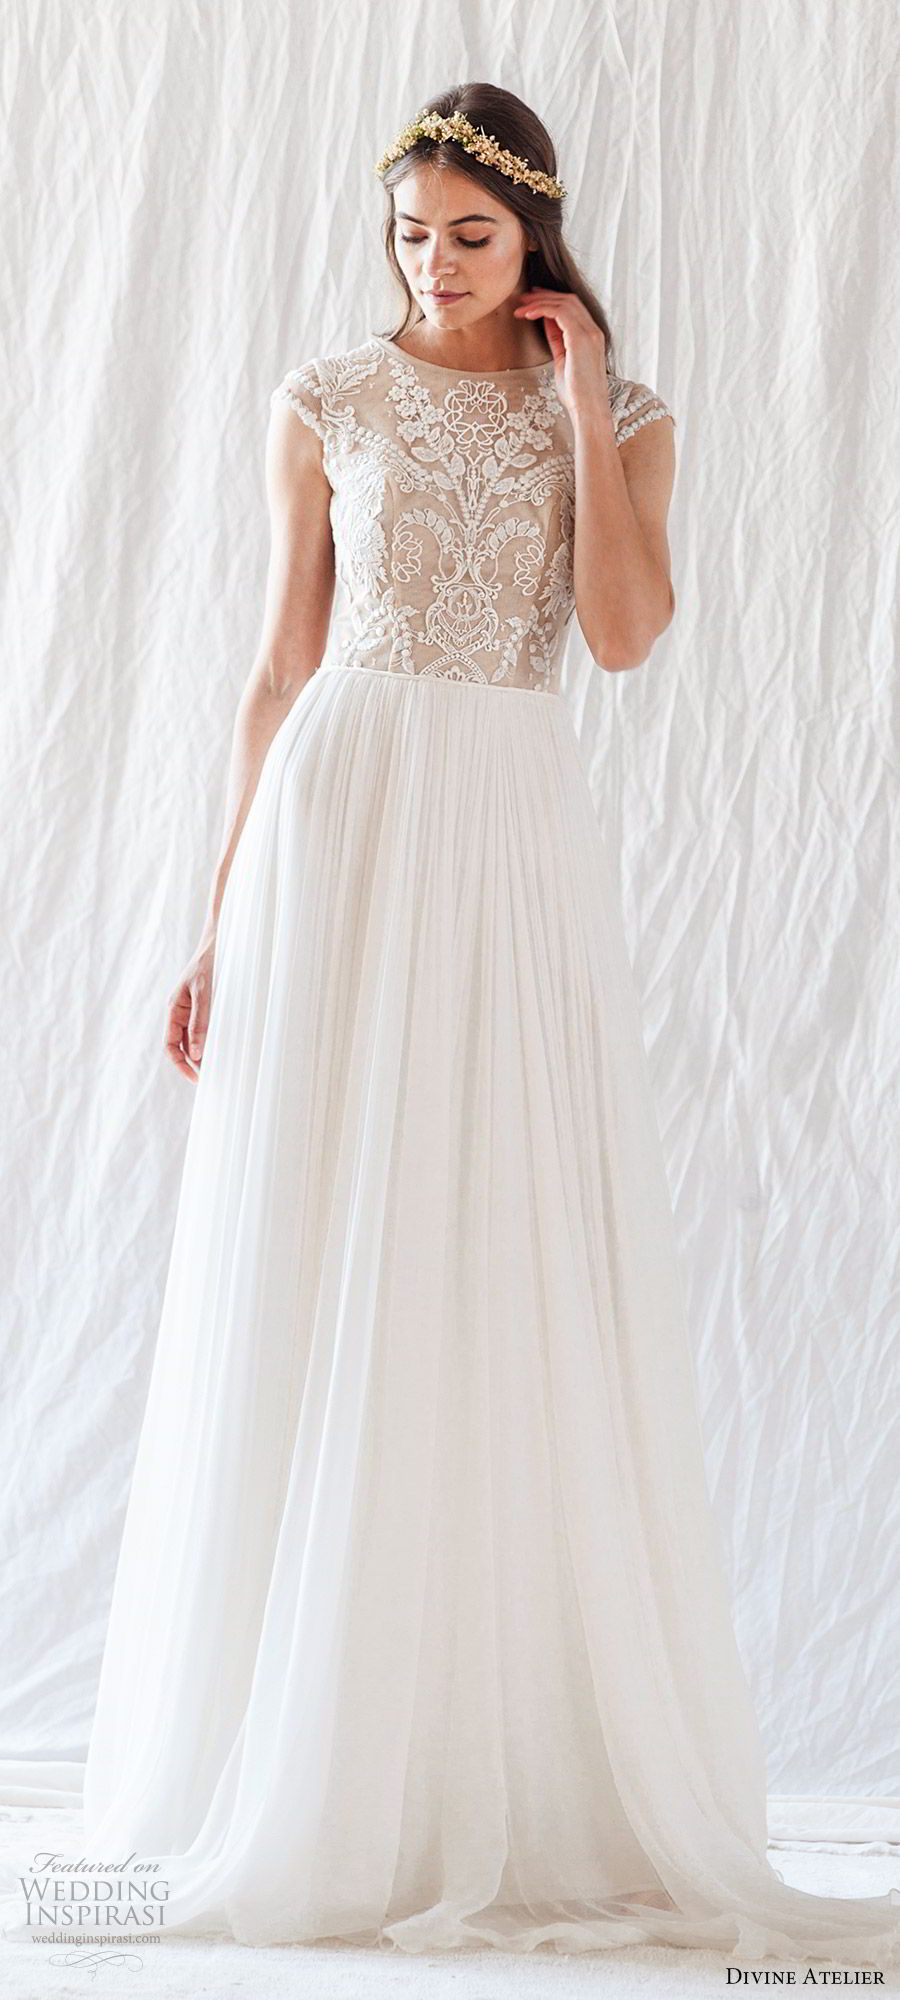 divine atelier 2019 bridal illusion cap sleeves jewel neck embroidered bodice soft a line wedding dress (15) sheer back sweep train romantic whimsical  mv